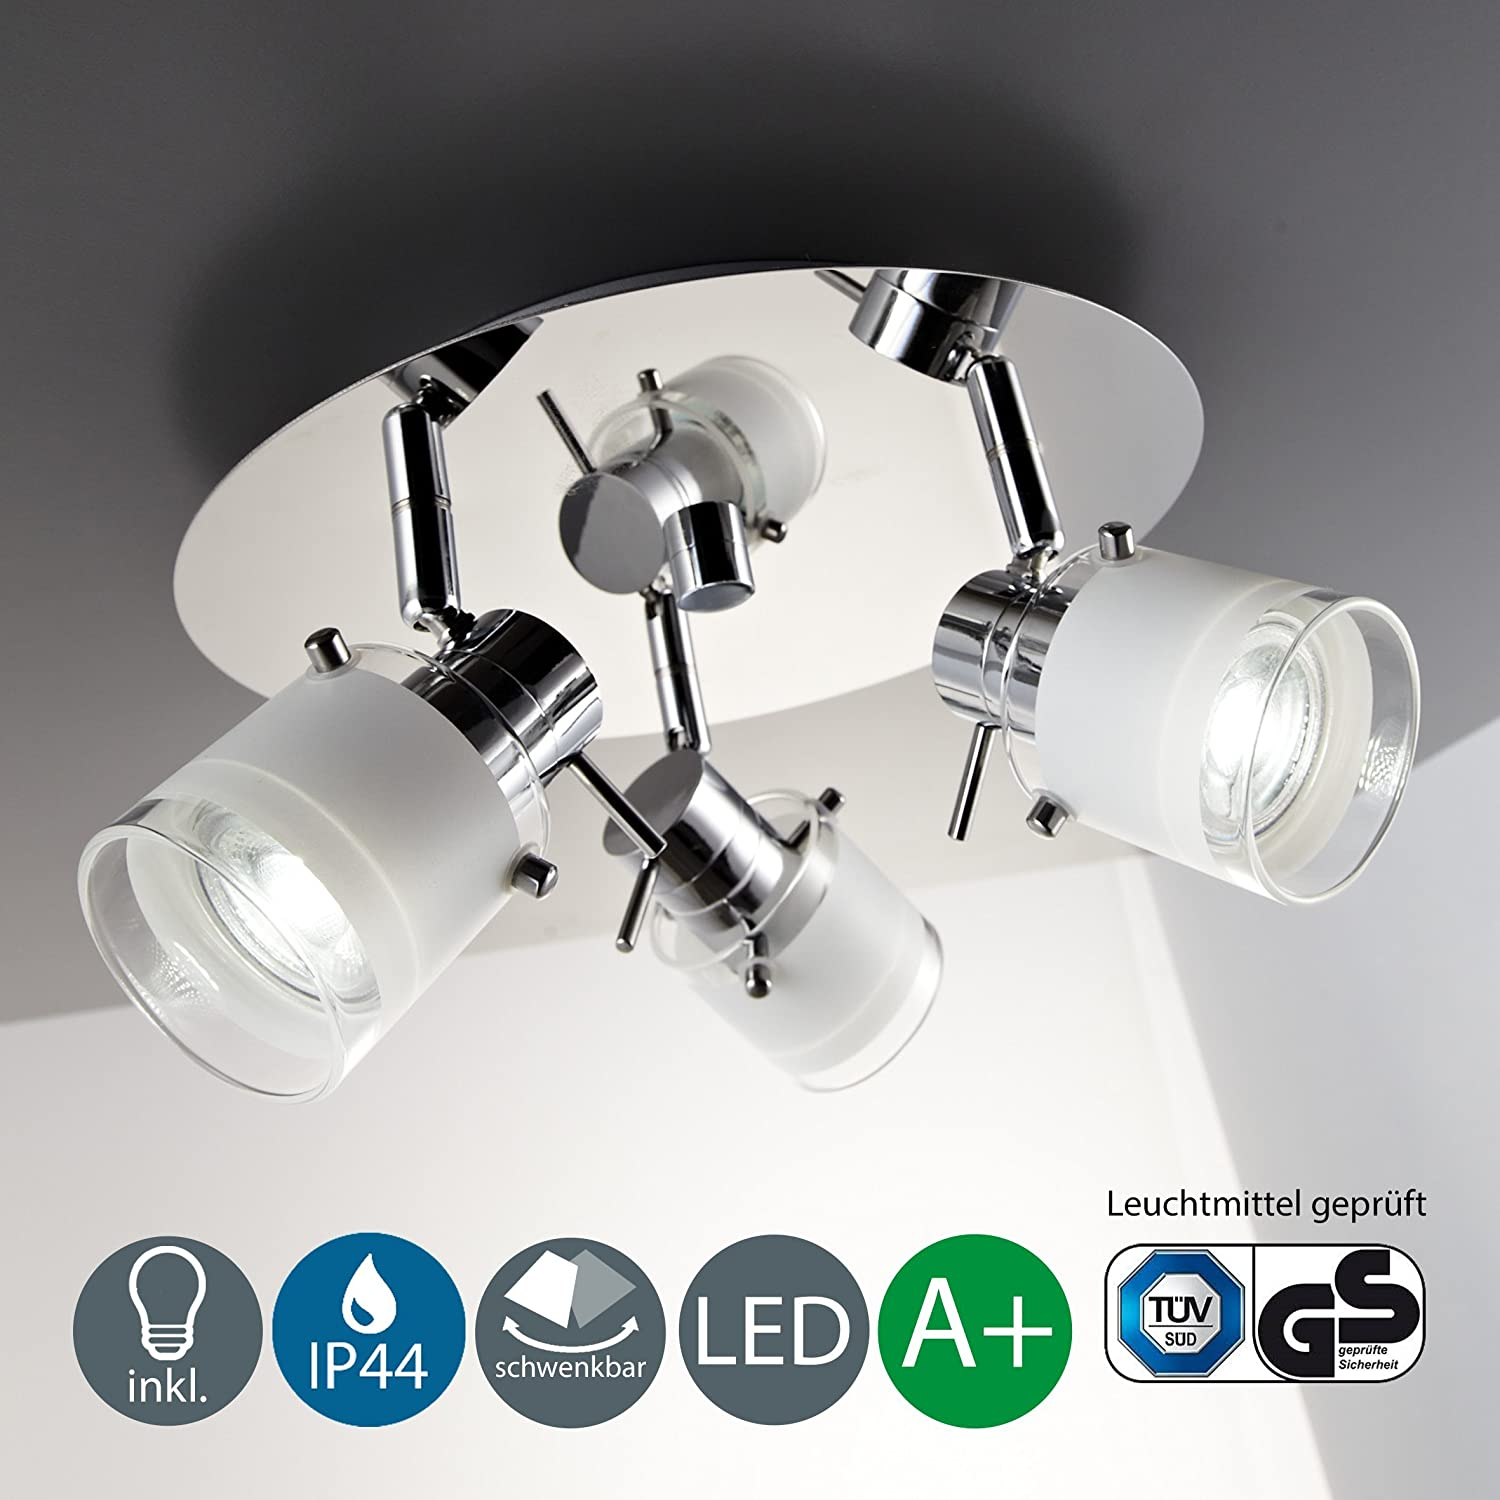 Modern LED Wall light | Bathroom wall fitting | Adjustable spotlight | Beauty light | Pull switch operated | 5 Watt | 400 Lumen | 3000 Kelvin | Warm white light colour | IP 44 rated [Energy Class A+] B.K.Licht BKL1016